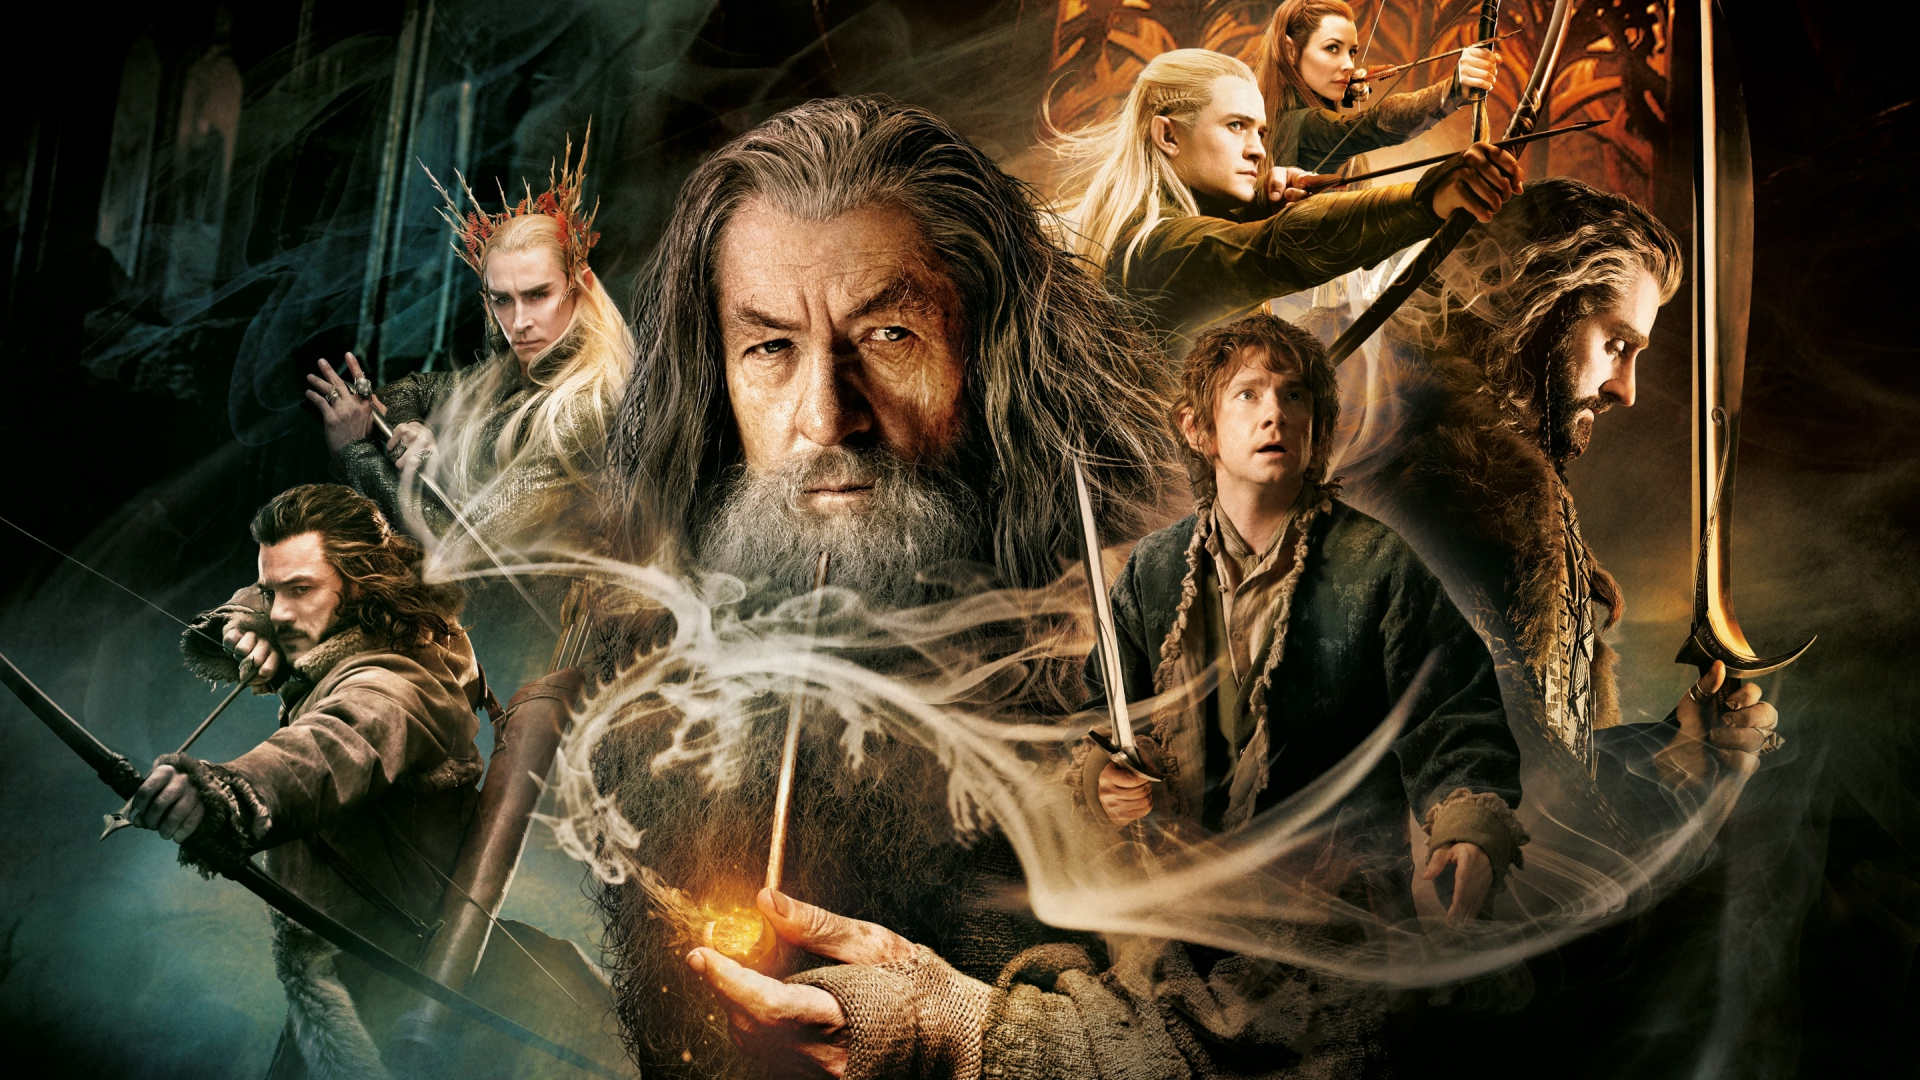 Wallpaper the hobbit the desolation of smaug 1920x1080 HD Wallpaper 1920x1080